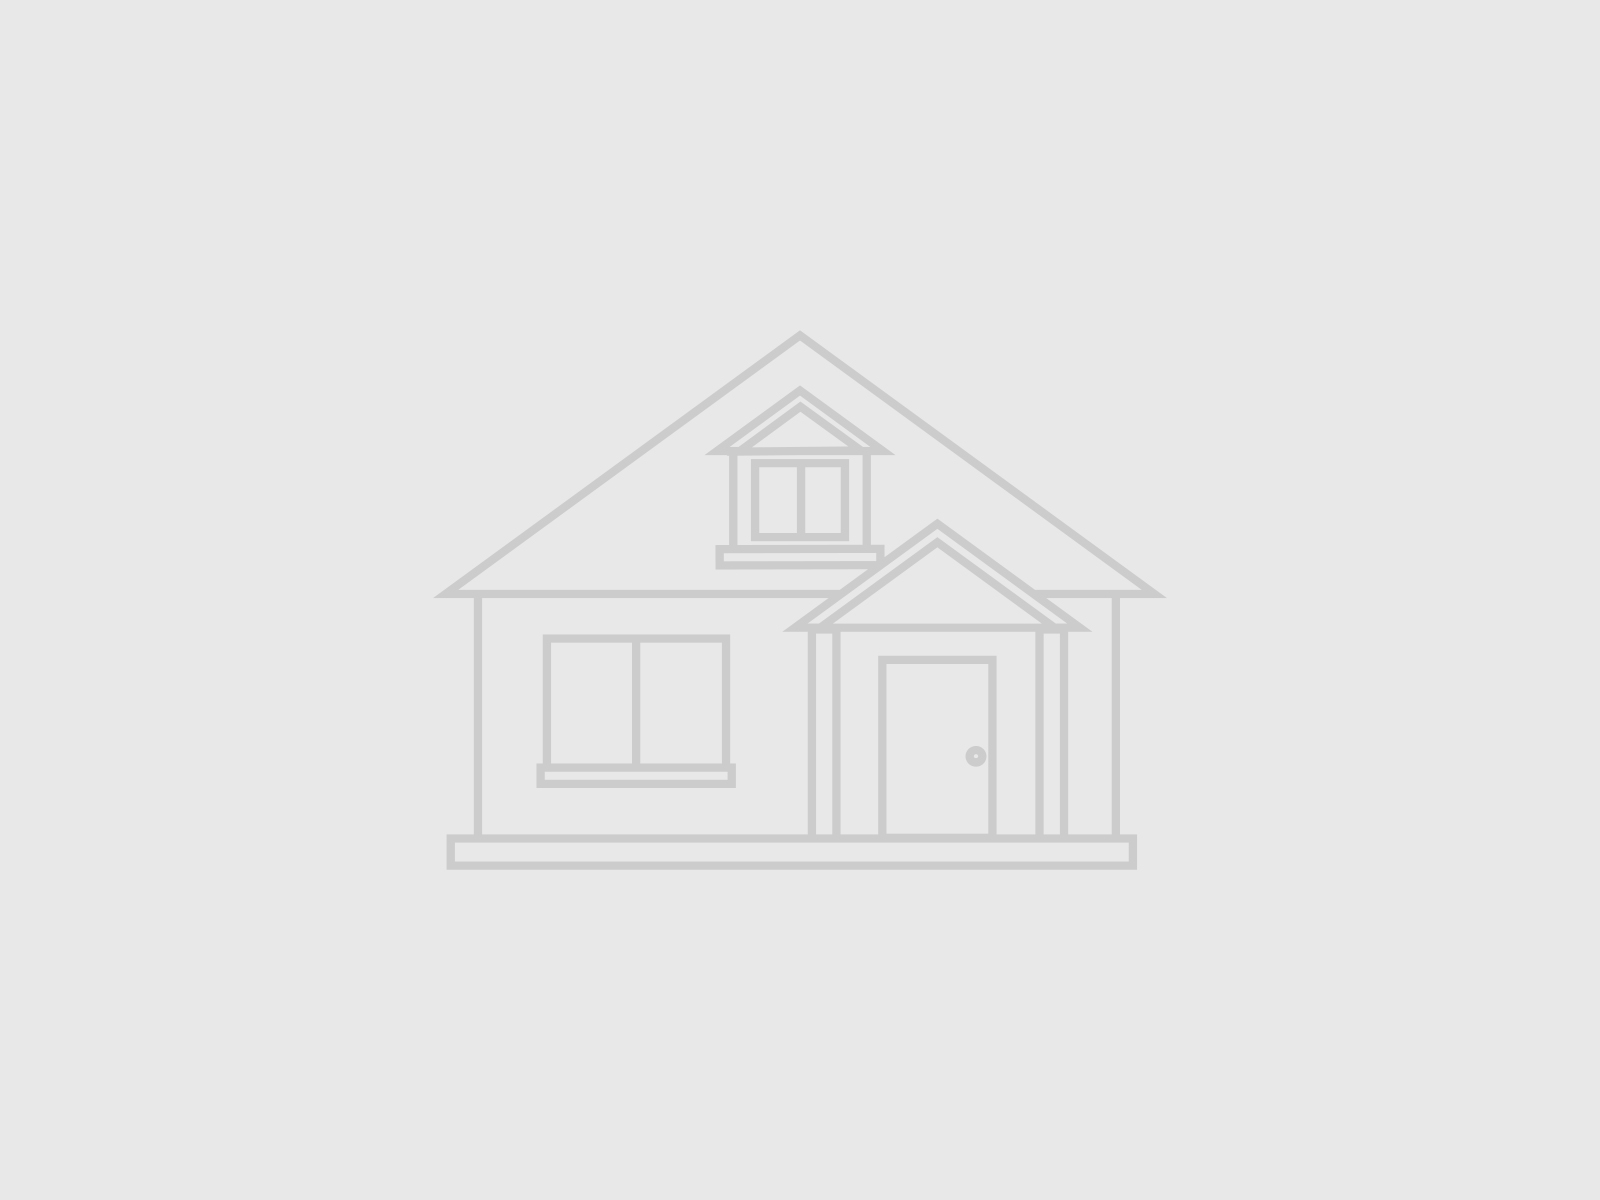 Single Family Homes for Sale at 1870 Bethel Ridge Farms Boulevard O Fallon, Illinois 62269 United States